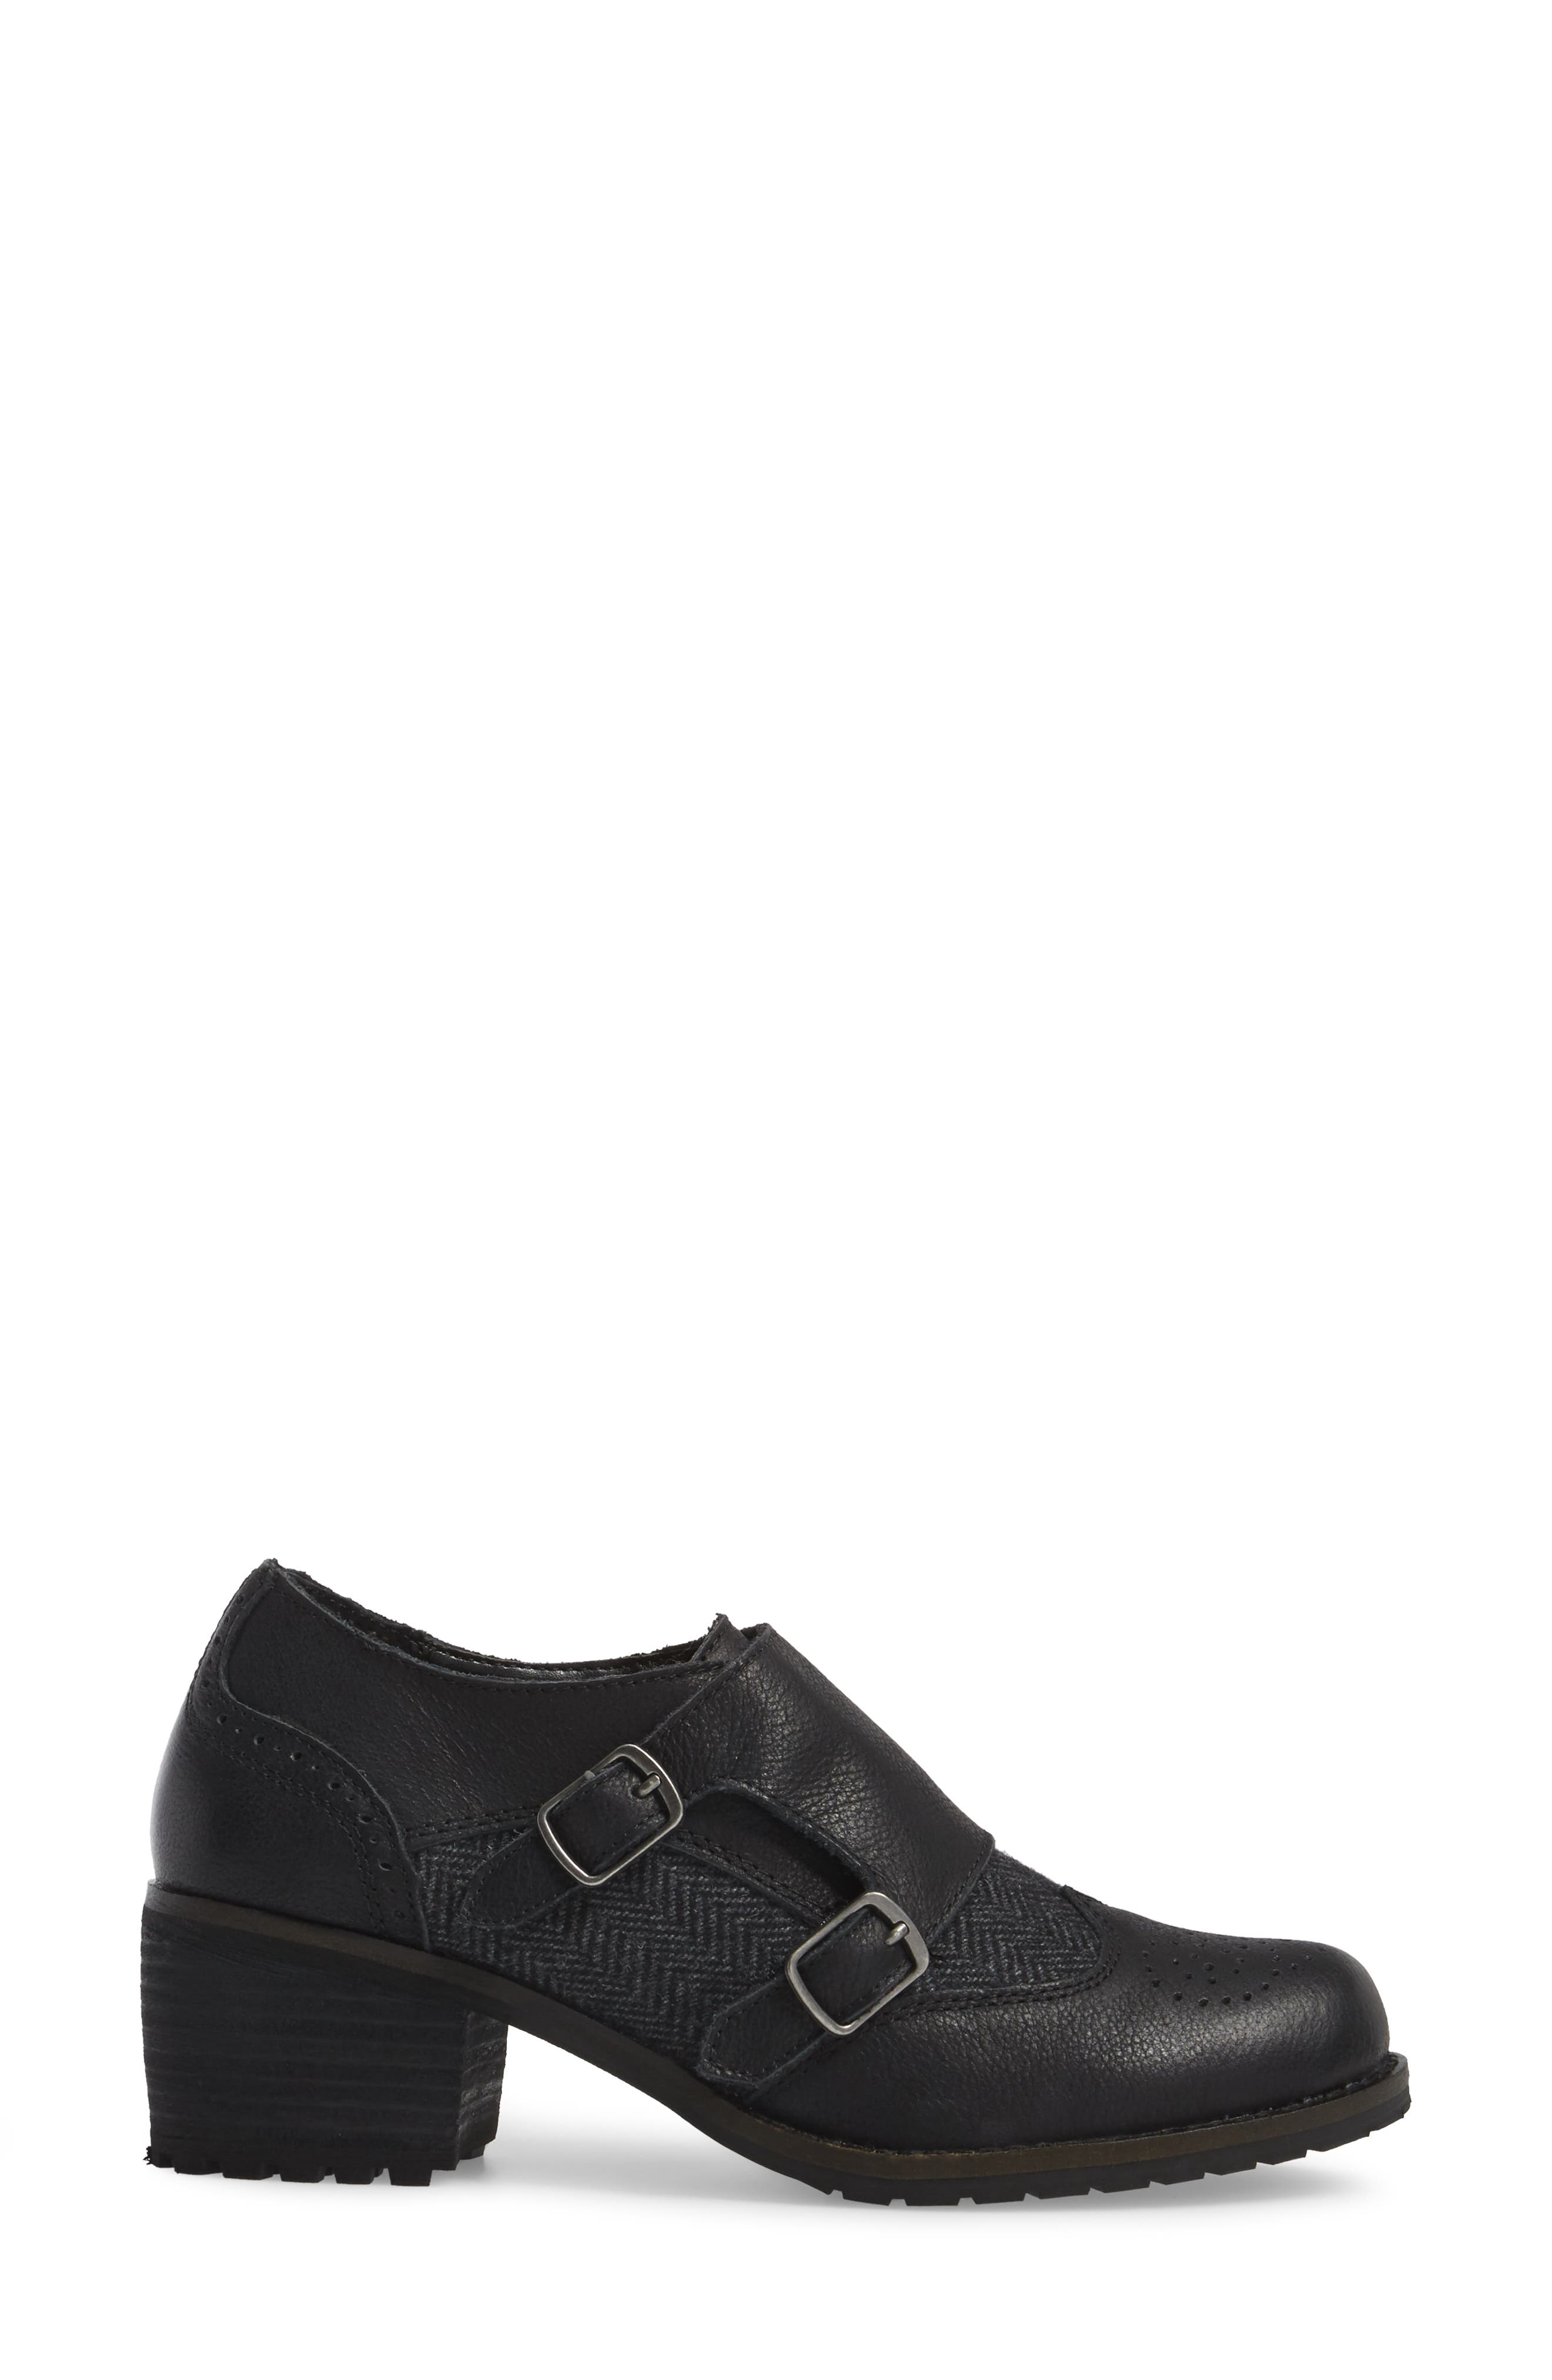 Dina Double Monk Strap Ankle Boot,                             Alternate thumbnail 3, color,                             BLACK LEATHER